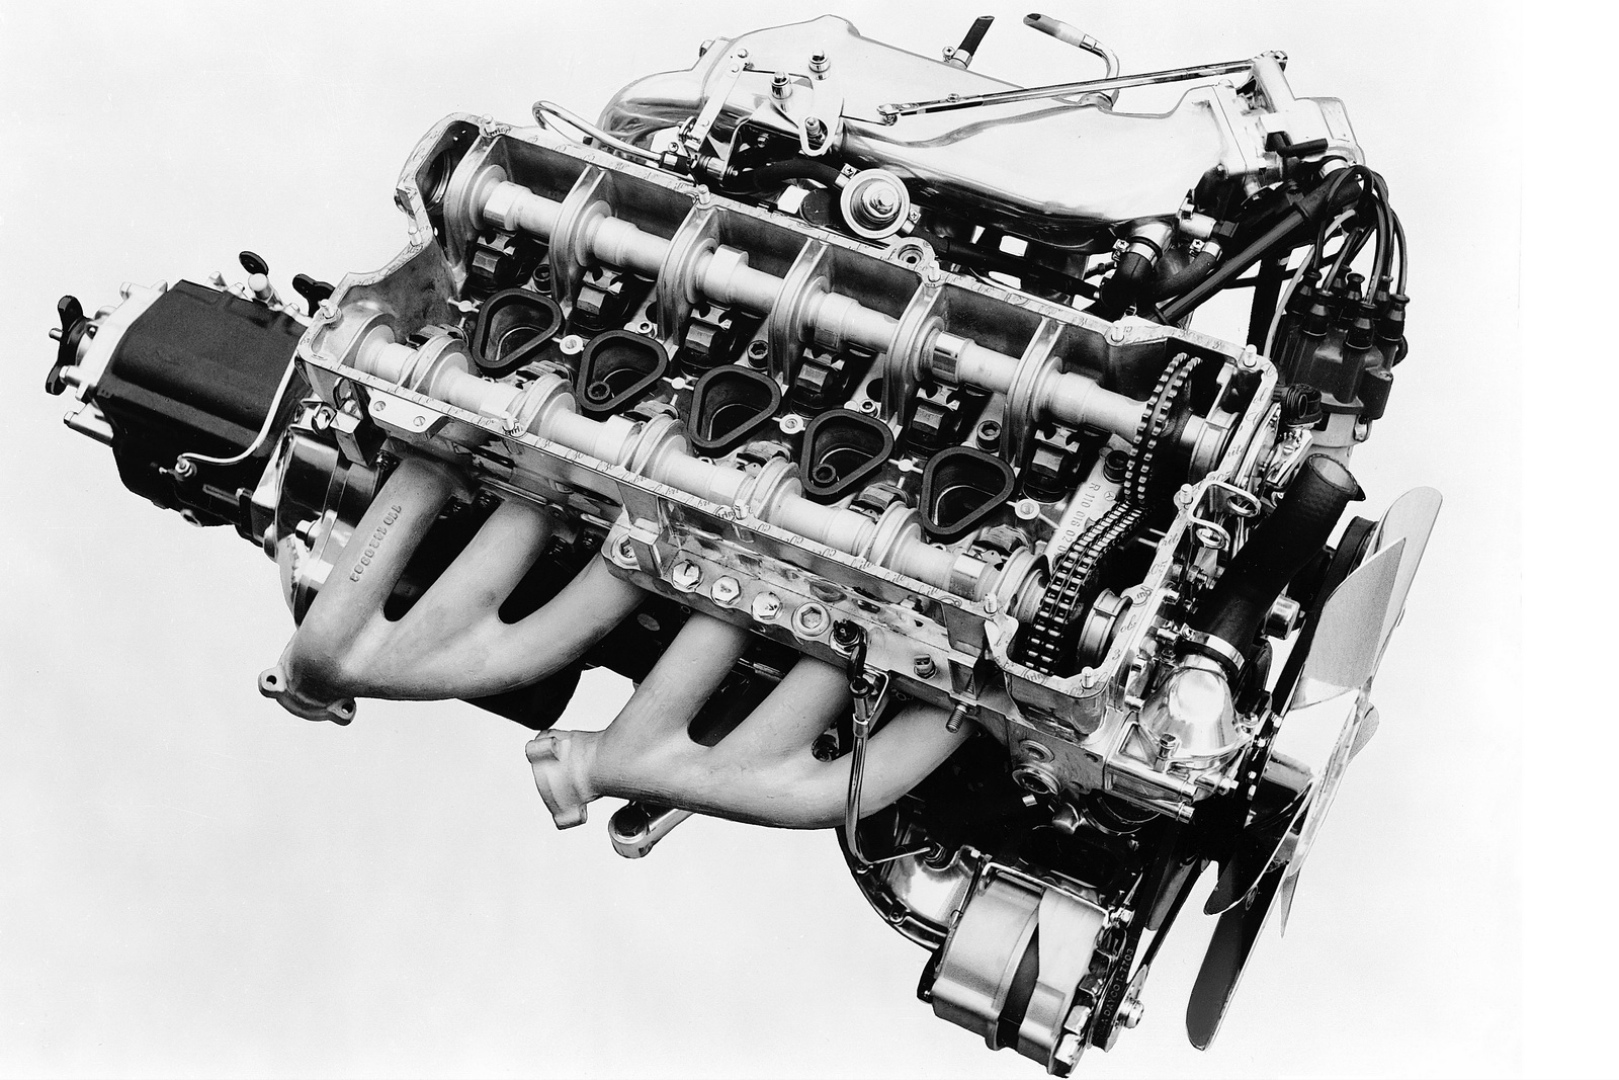 Mercedes Benz Plans Four Twin Turbocharged Inline Six